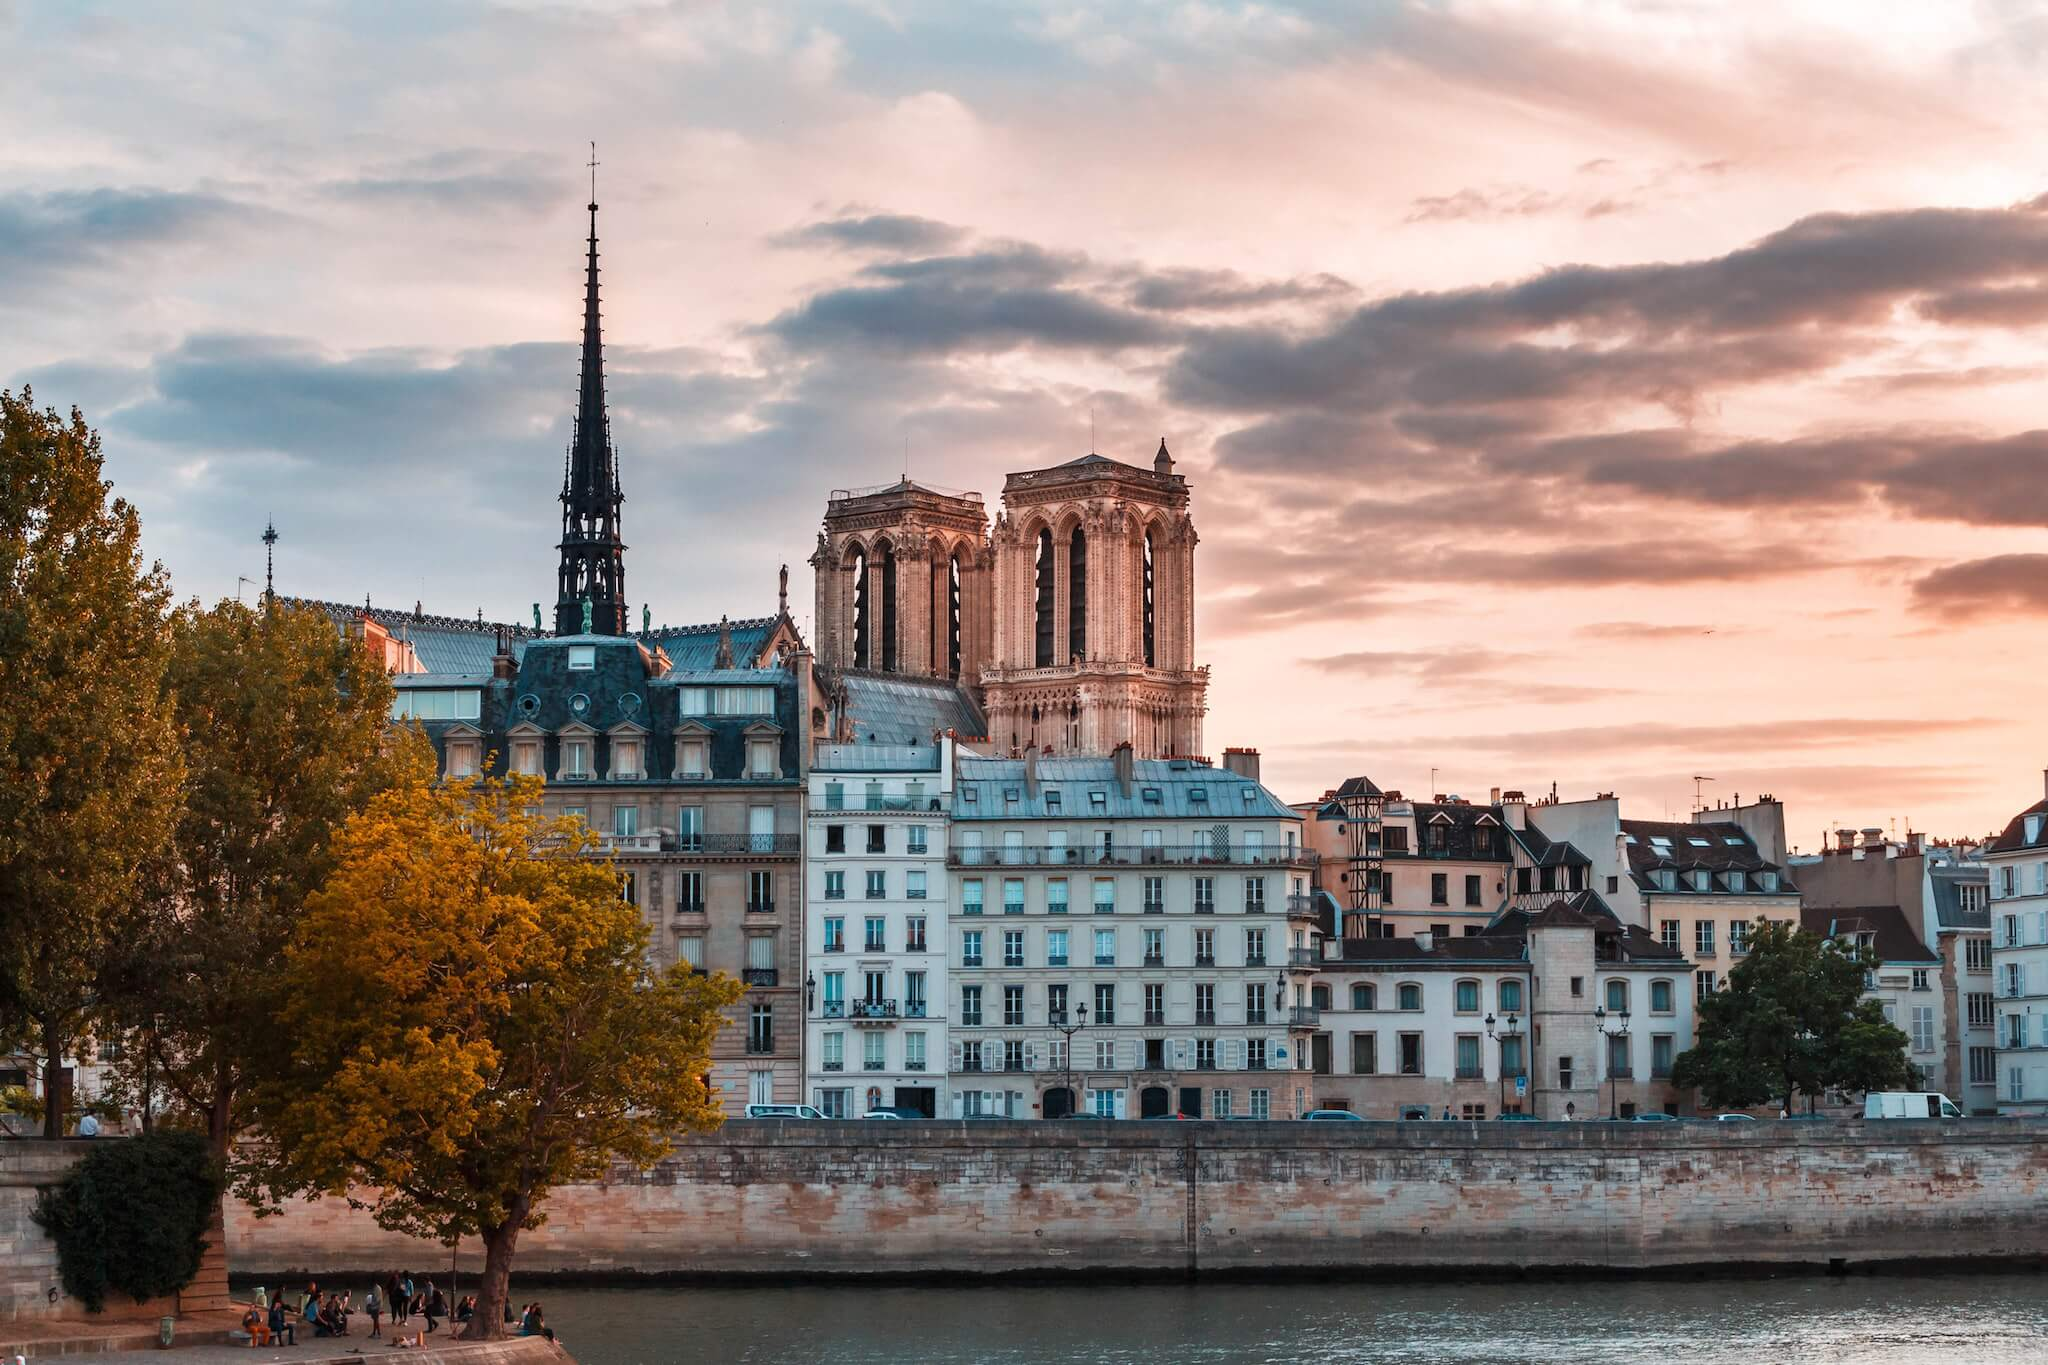 A view of Pont-Neuf, the Seine, Parisian apartments, and in the background, Notre-Dame, at sunset.